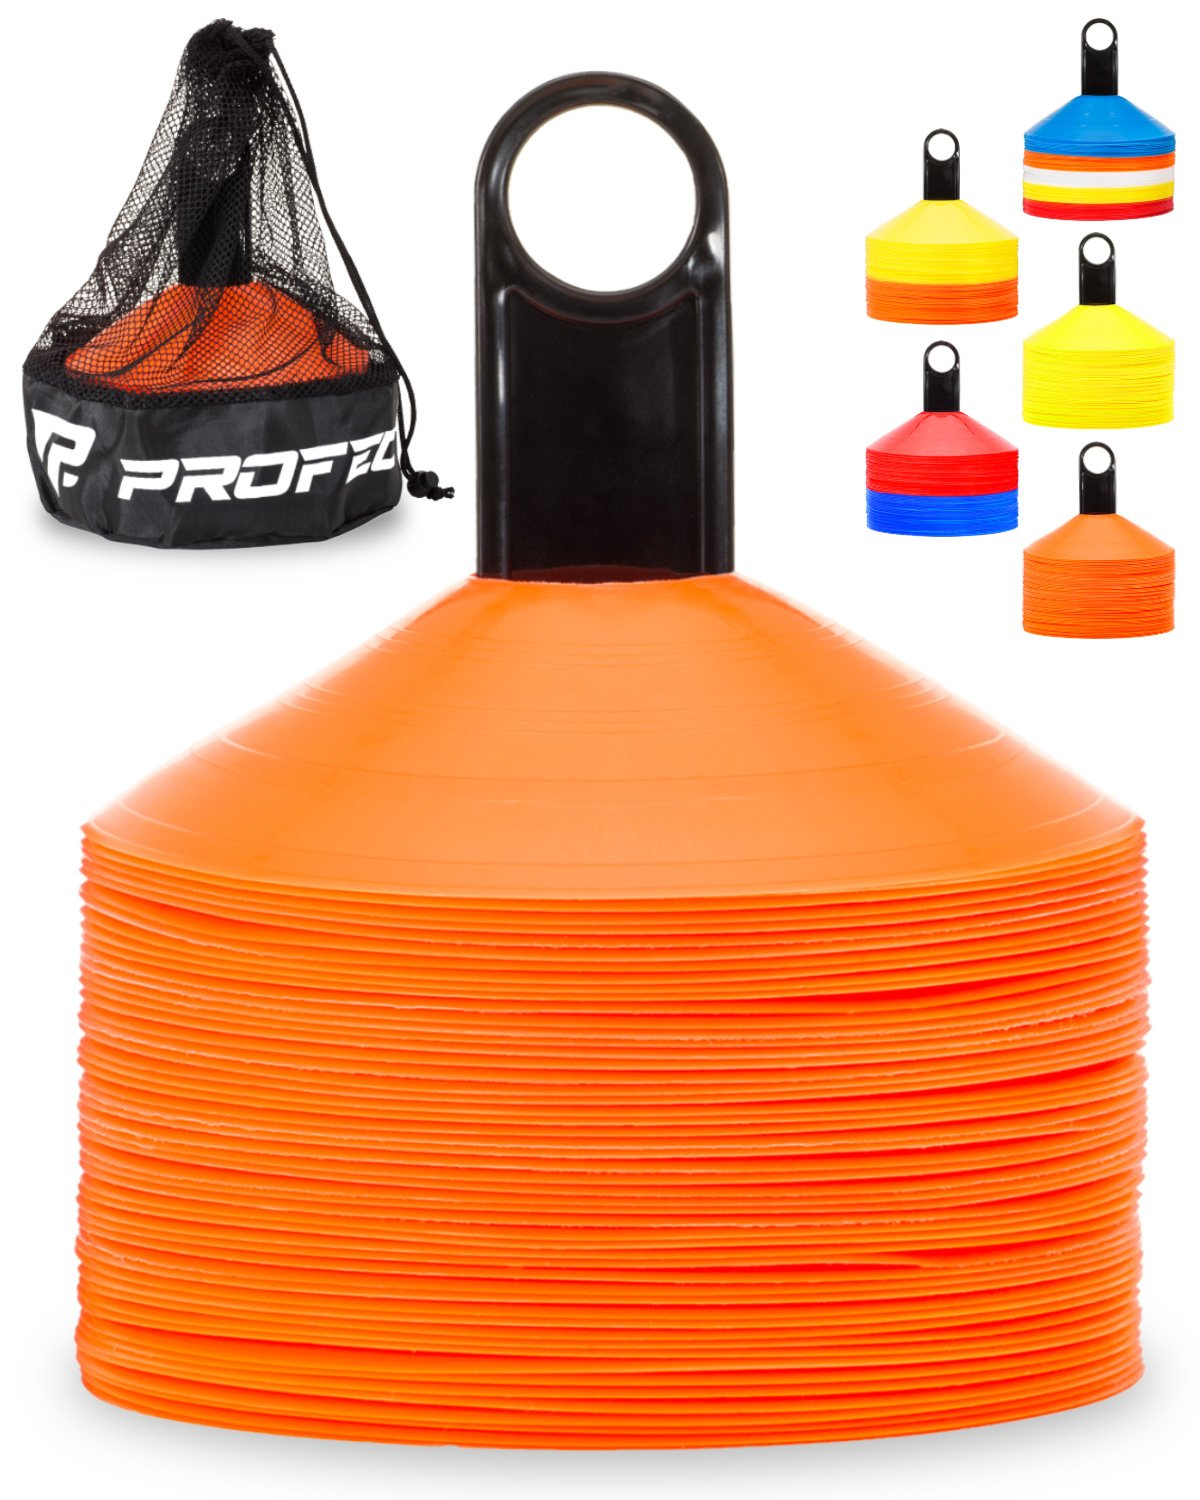 Pro Disc Cones (Set of 50) - Agility Soccer Cones with Carry Bag and Holder for Training, Football, Kids, Sports, Field Cone Markers - Includes Top 15 Drills eBook (Bright Orange) by Profect Sports (Image #1)